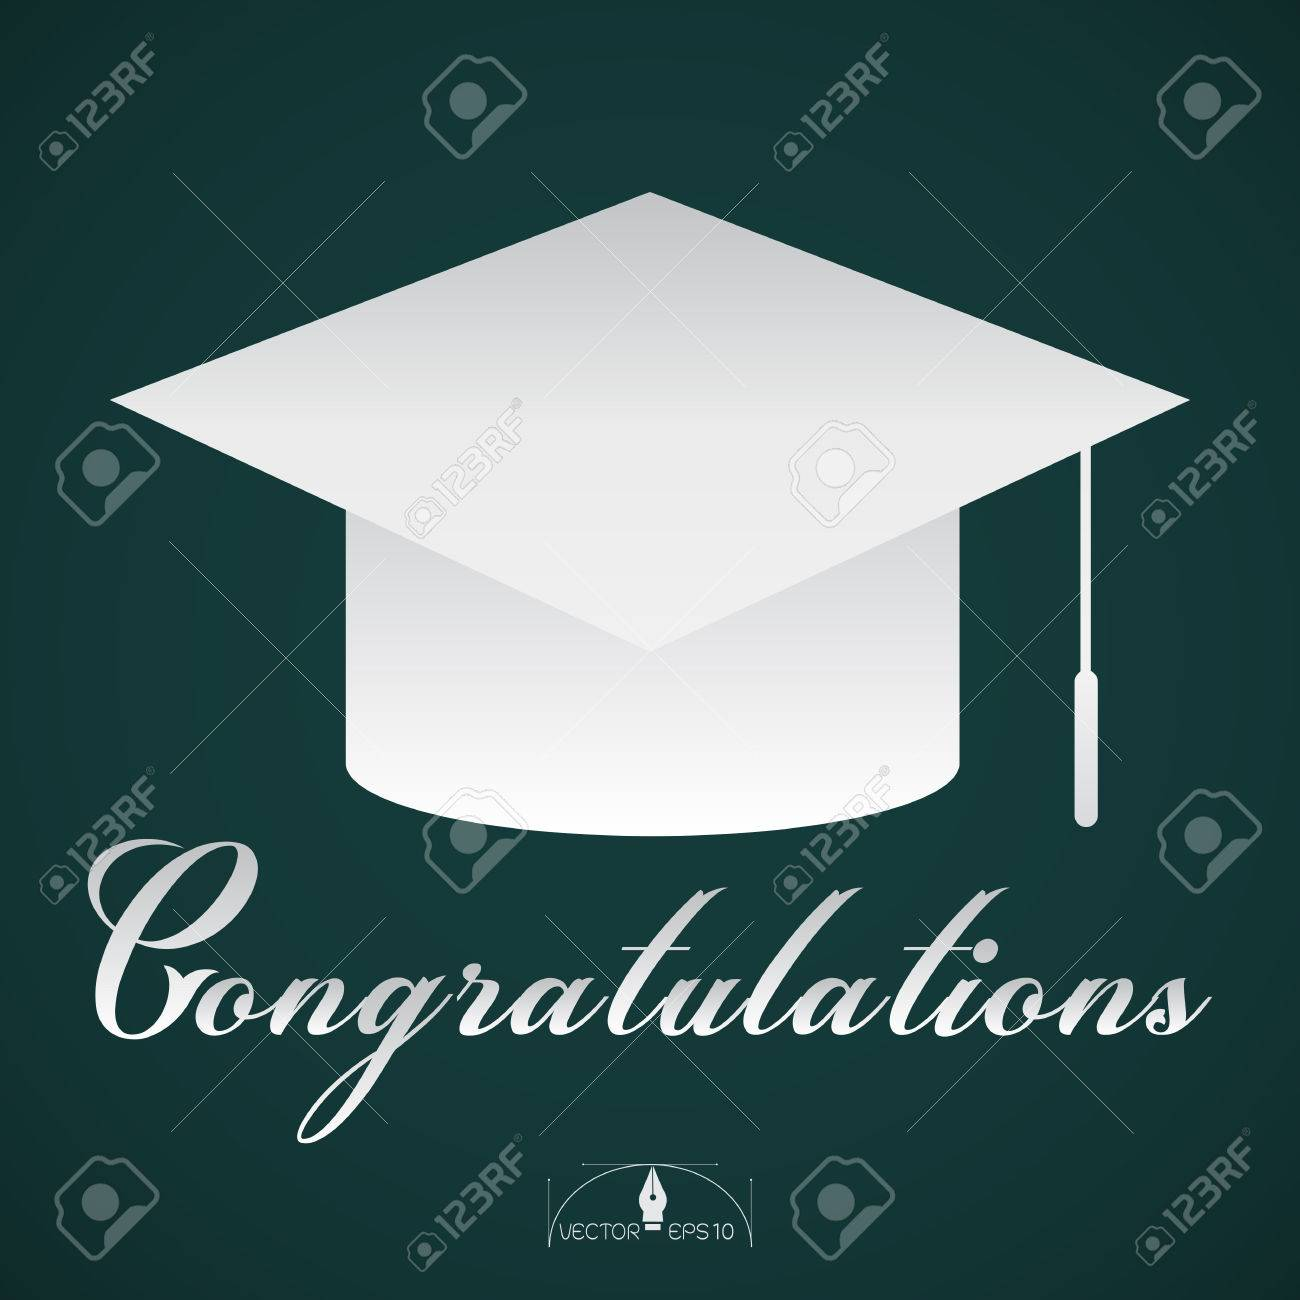 congratulations graduation cap poster background royalty free